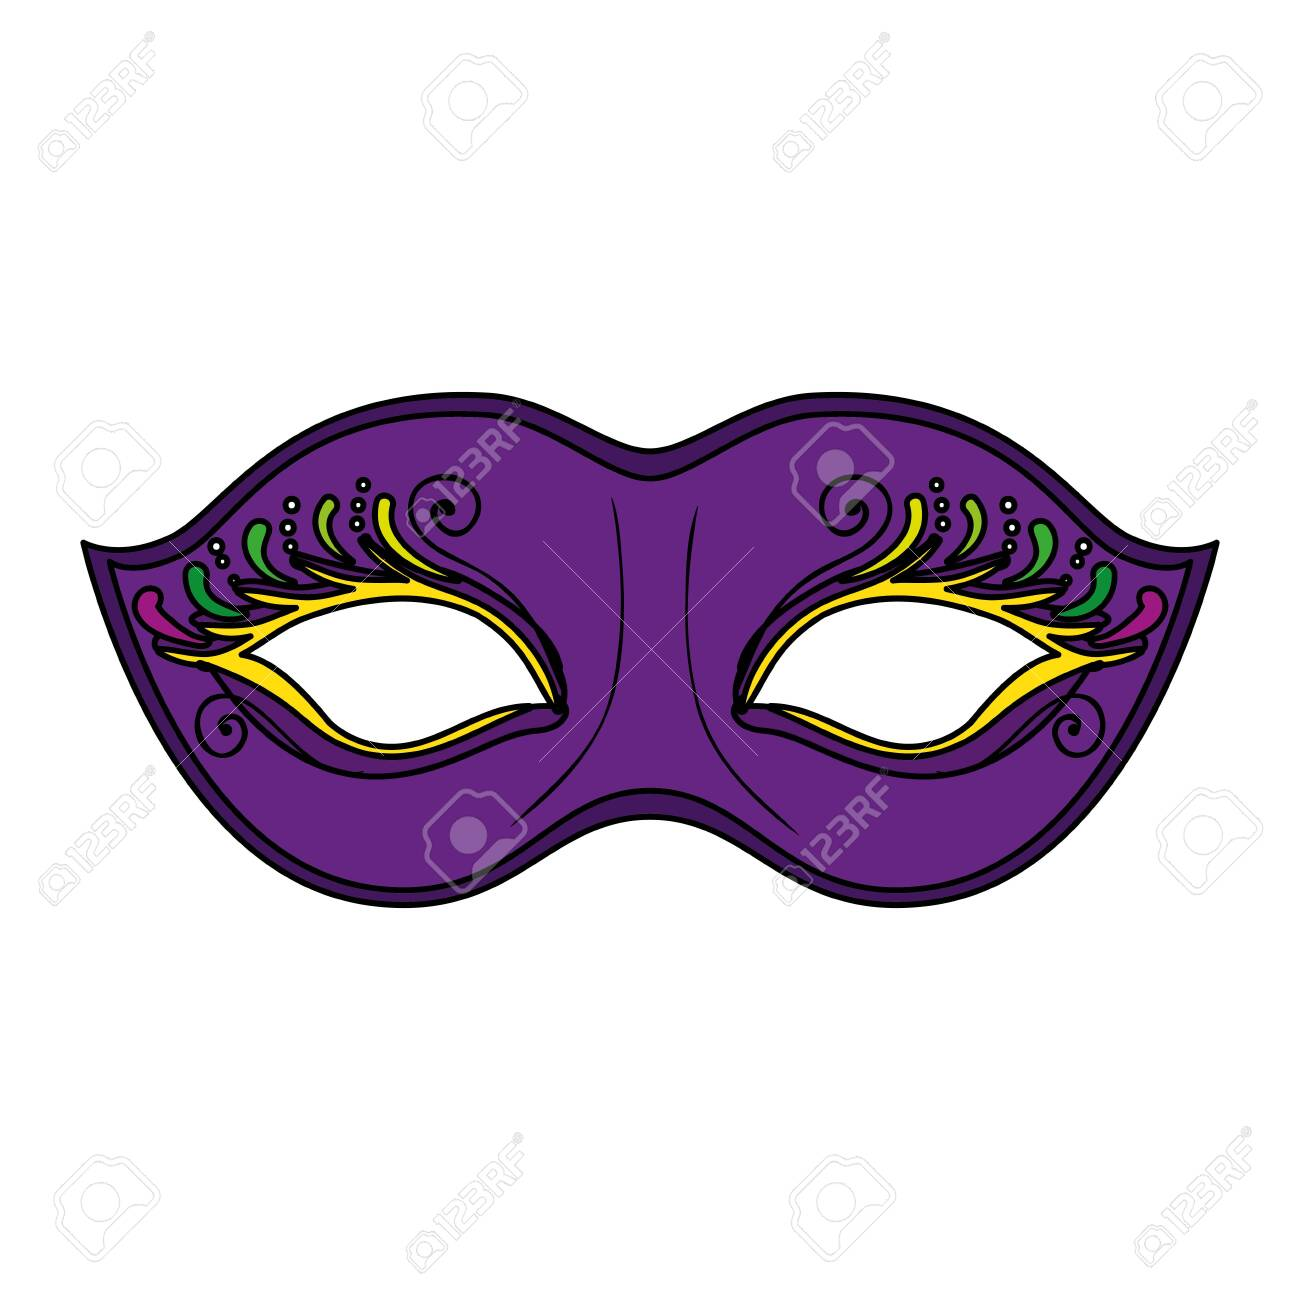 Mardi gras mask design, Party carnival decoration celebration festival holiday fun new orleans and traditional theme Vector illustration - 139163754